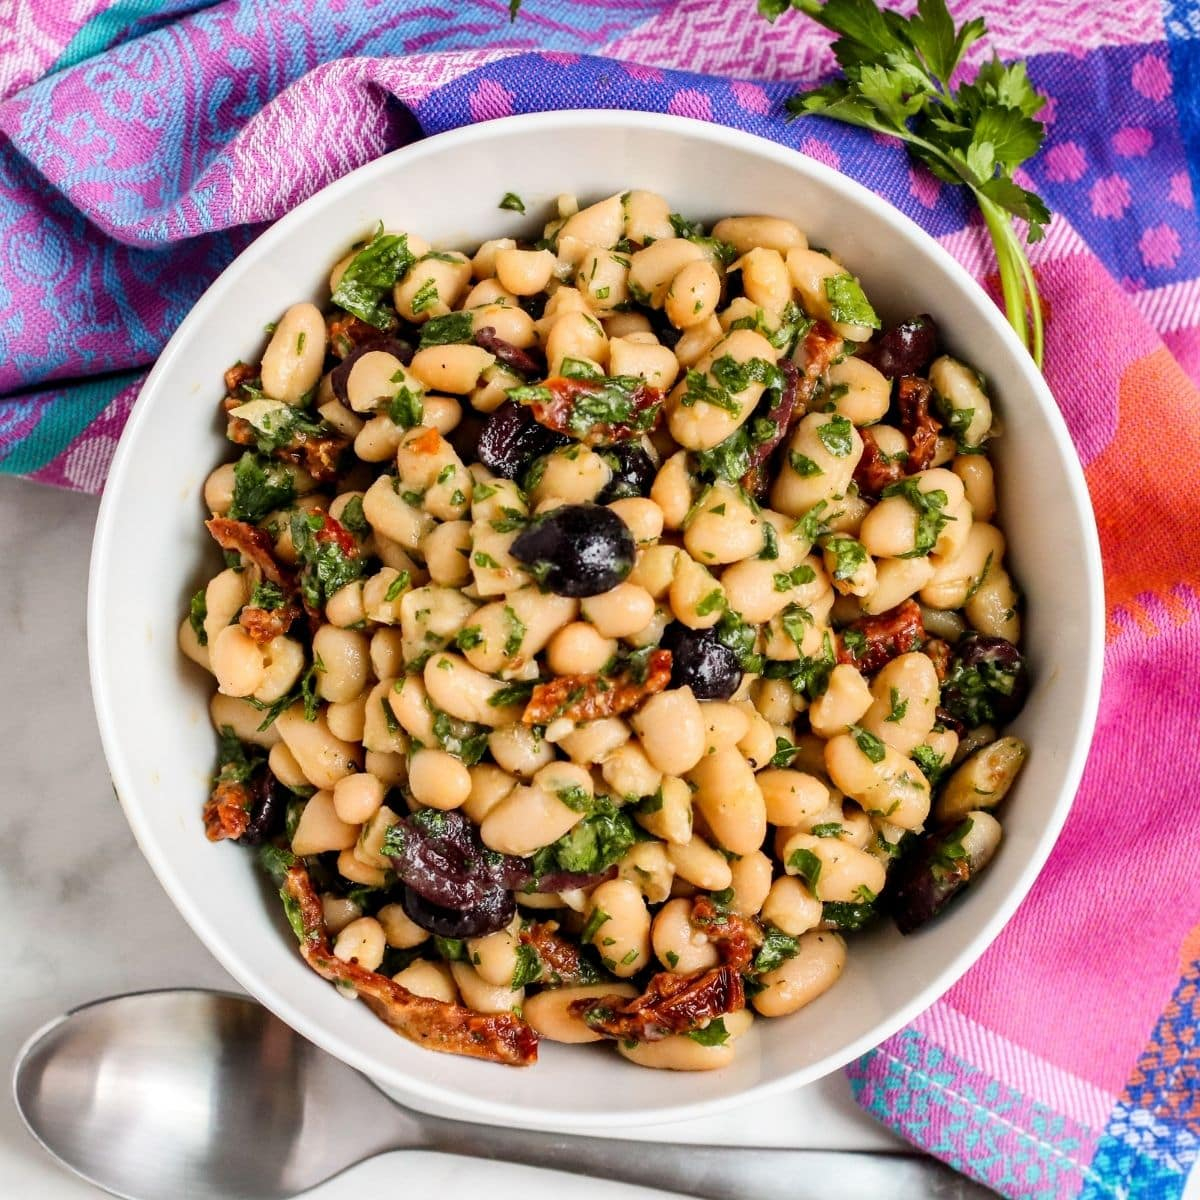 Bowl of white bean salad with olives and sun-dried tomatoes